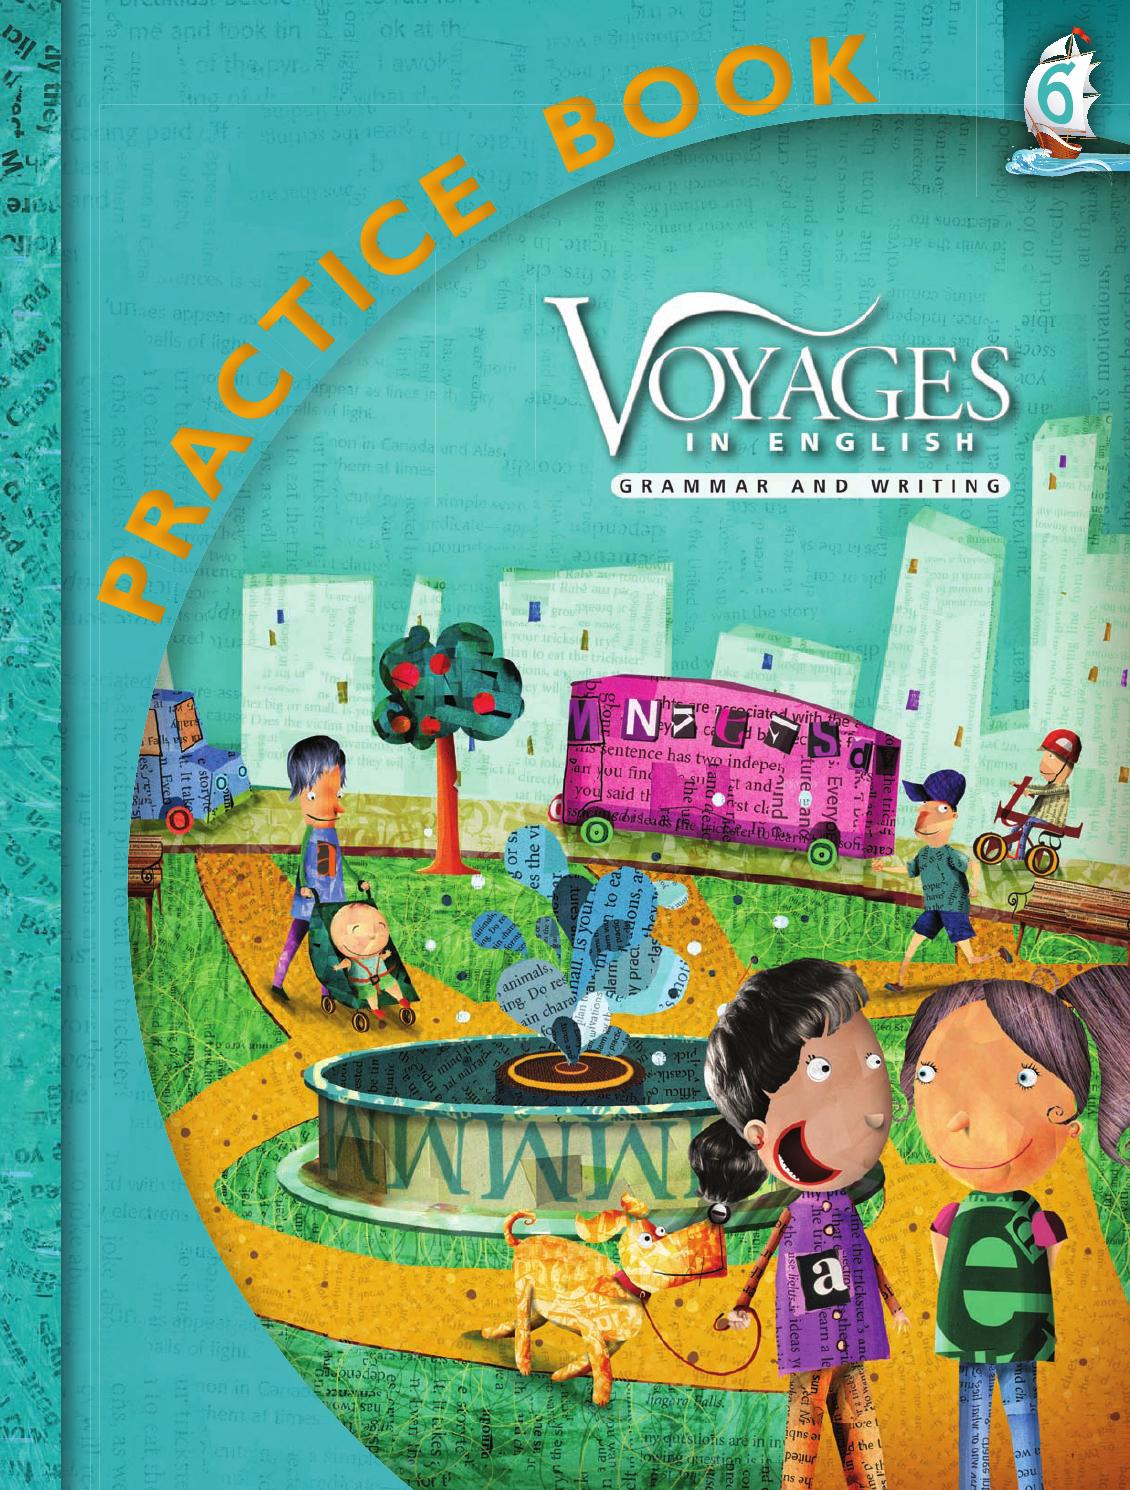 Worksheet 5th Grade English Grammar voyages in english 2011 grade 5 practice book by loyola press issuu 6 pb